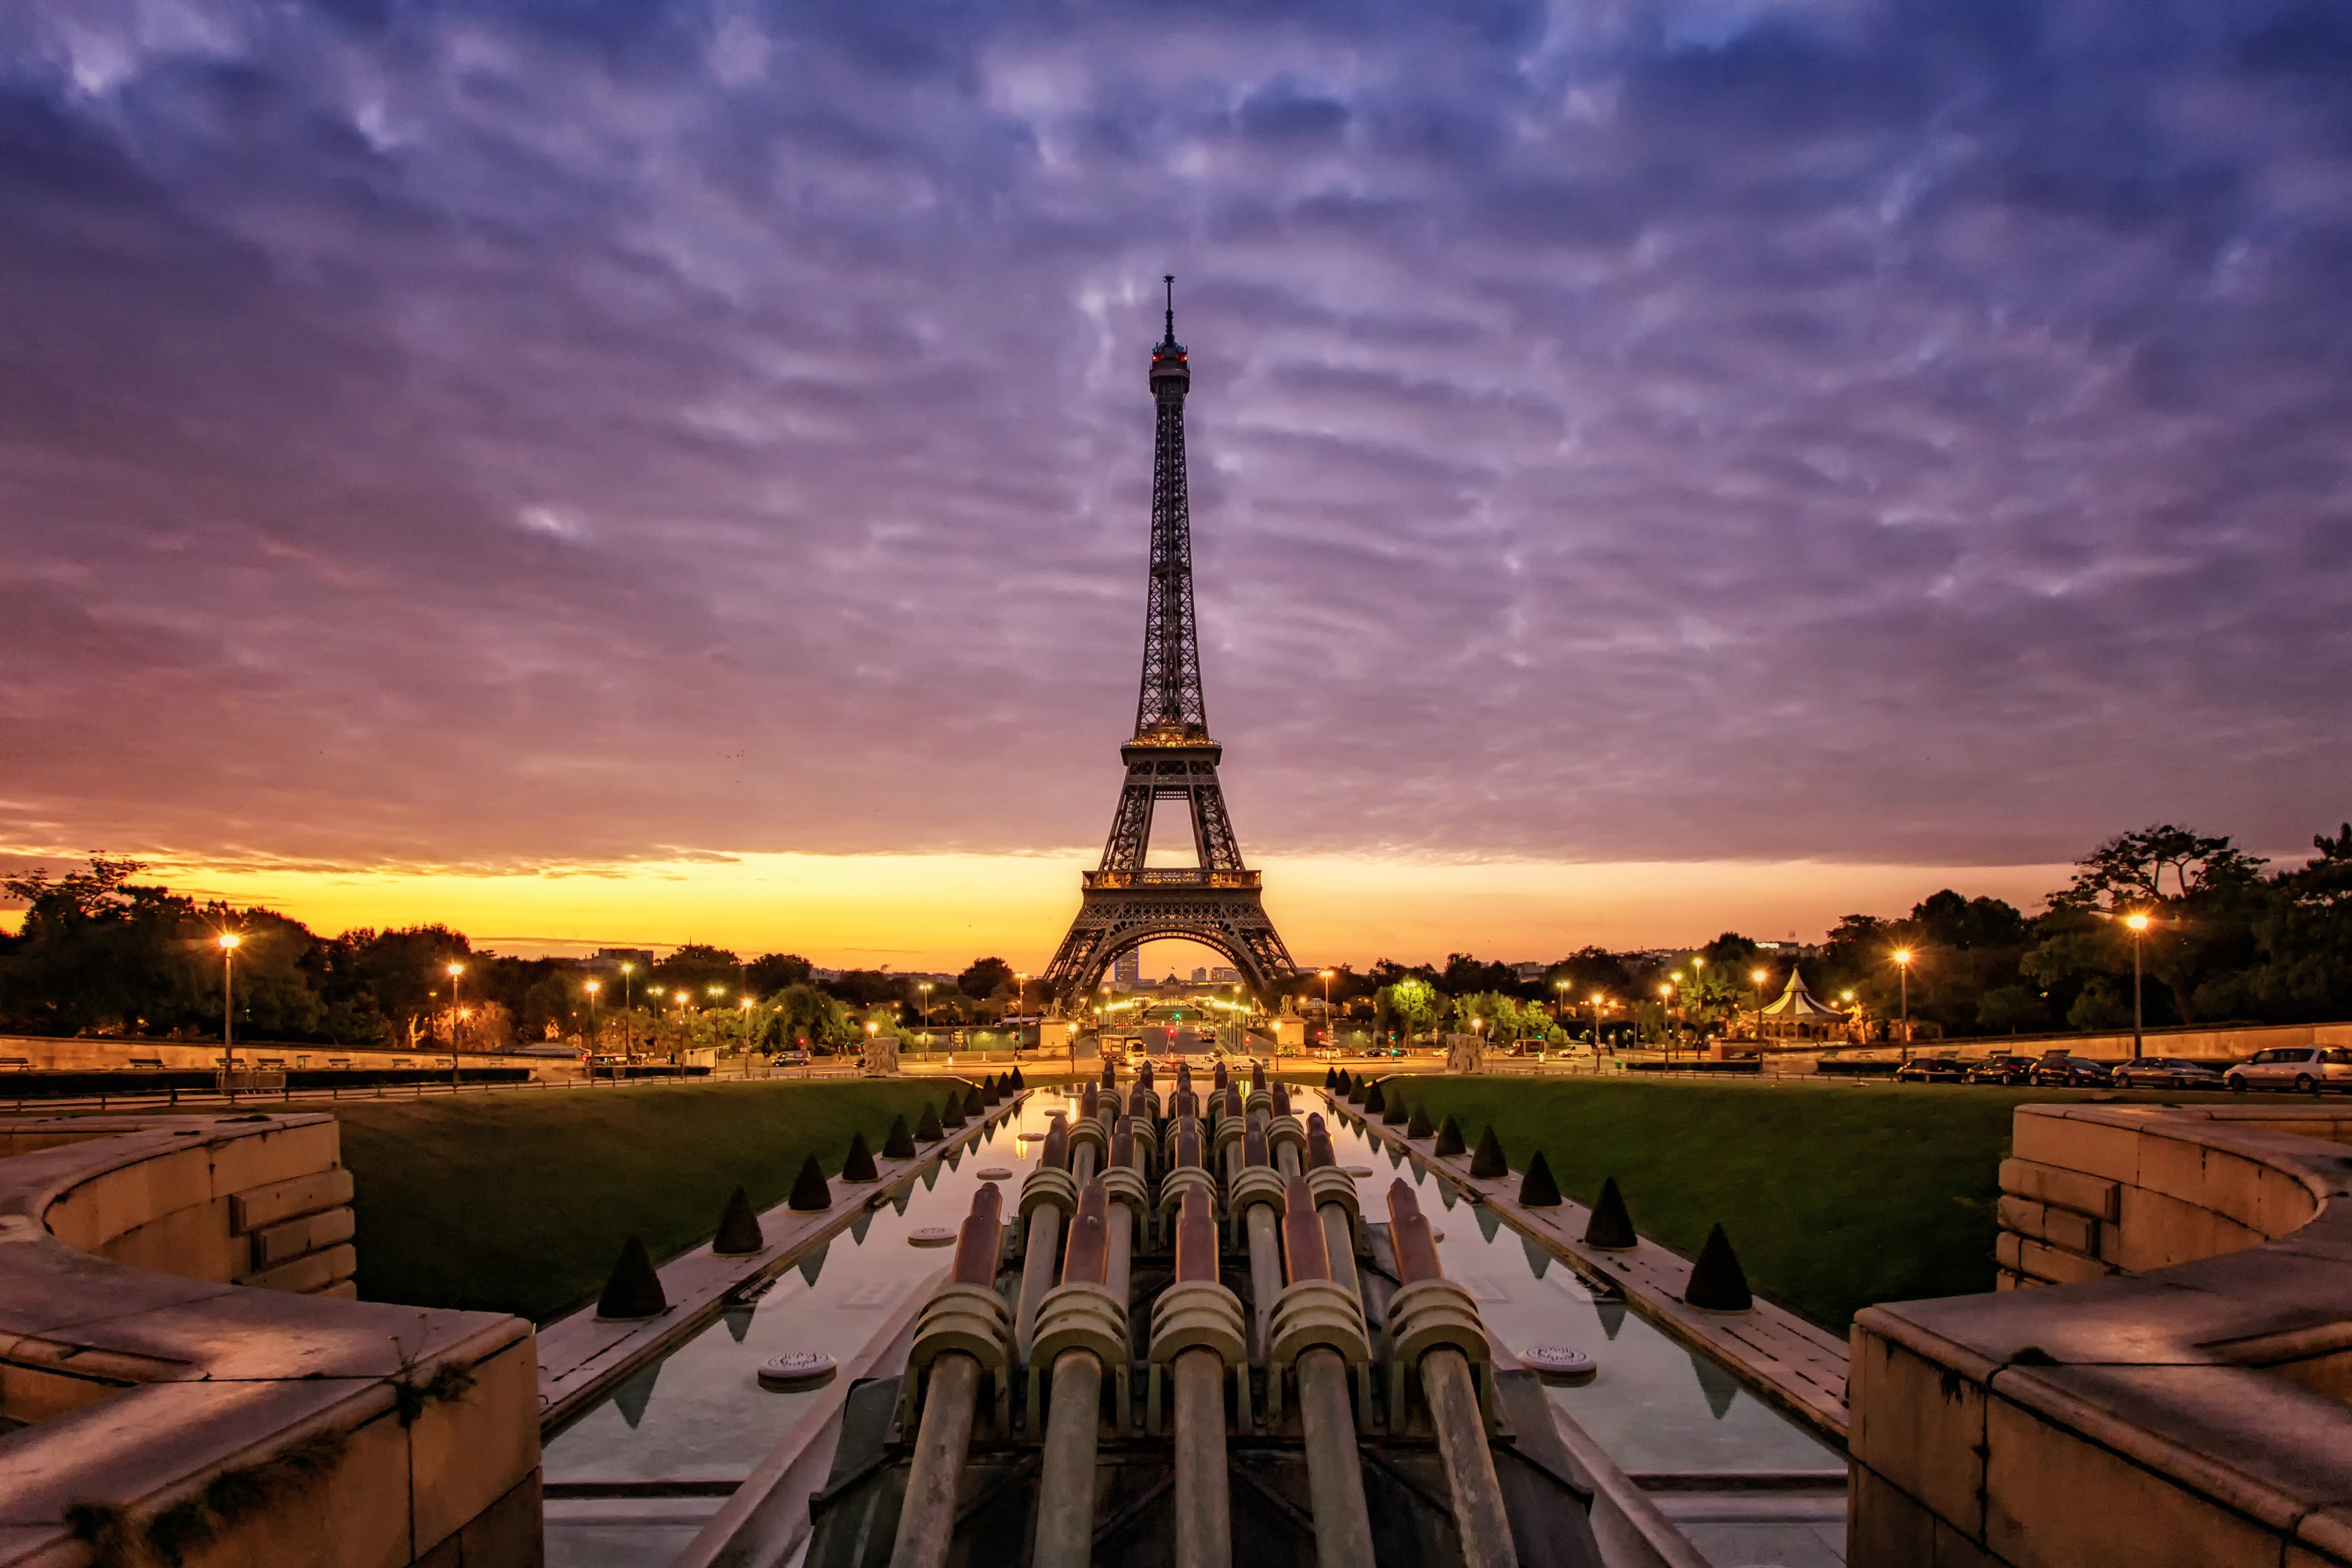 Eiffel Tower In Paris France Lonely Planet